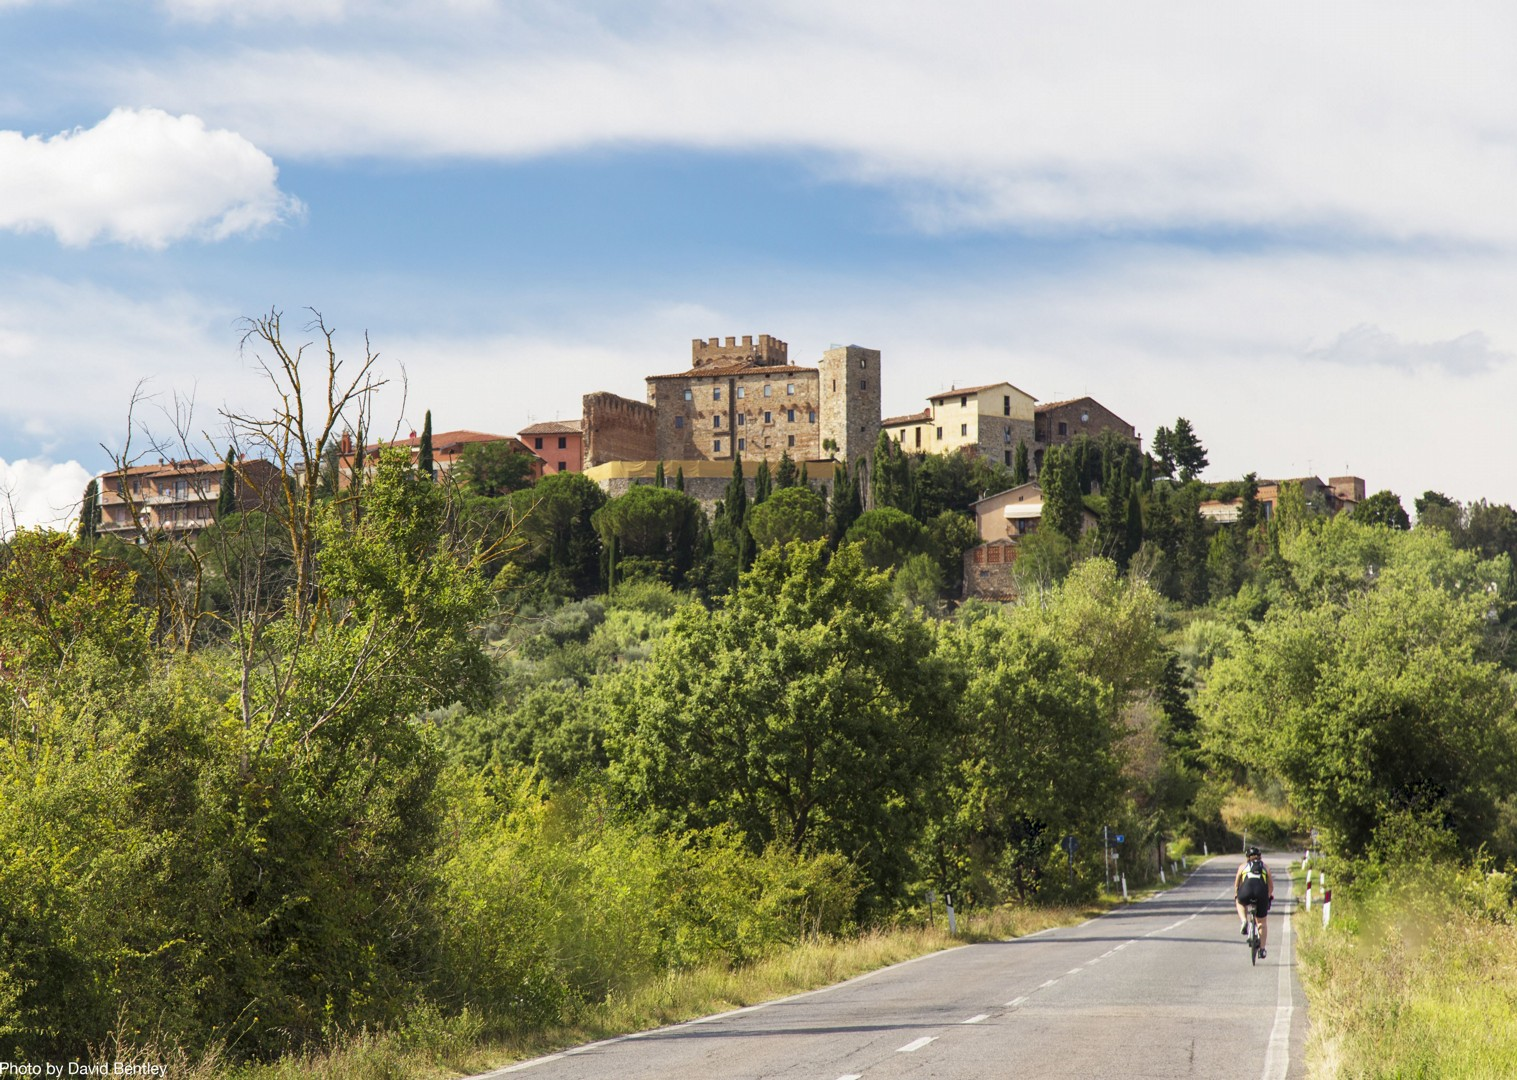 road-cycling-in-tuscany-italy.jpg - Italy - Tuscany Tourer - Road Cycling